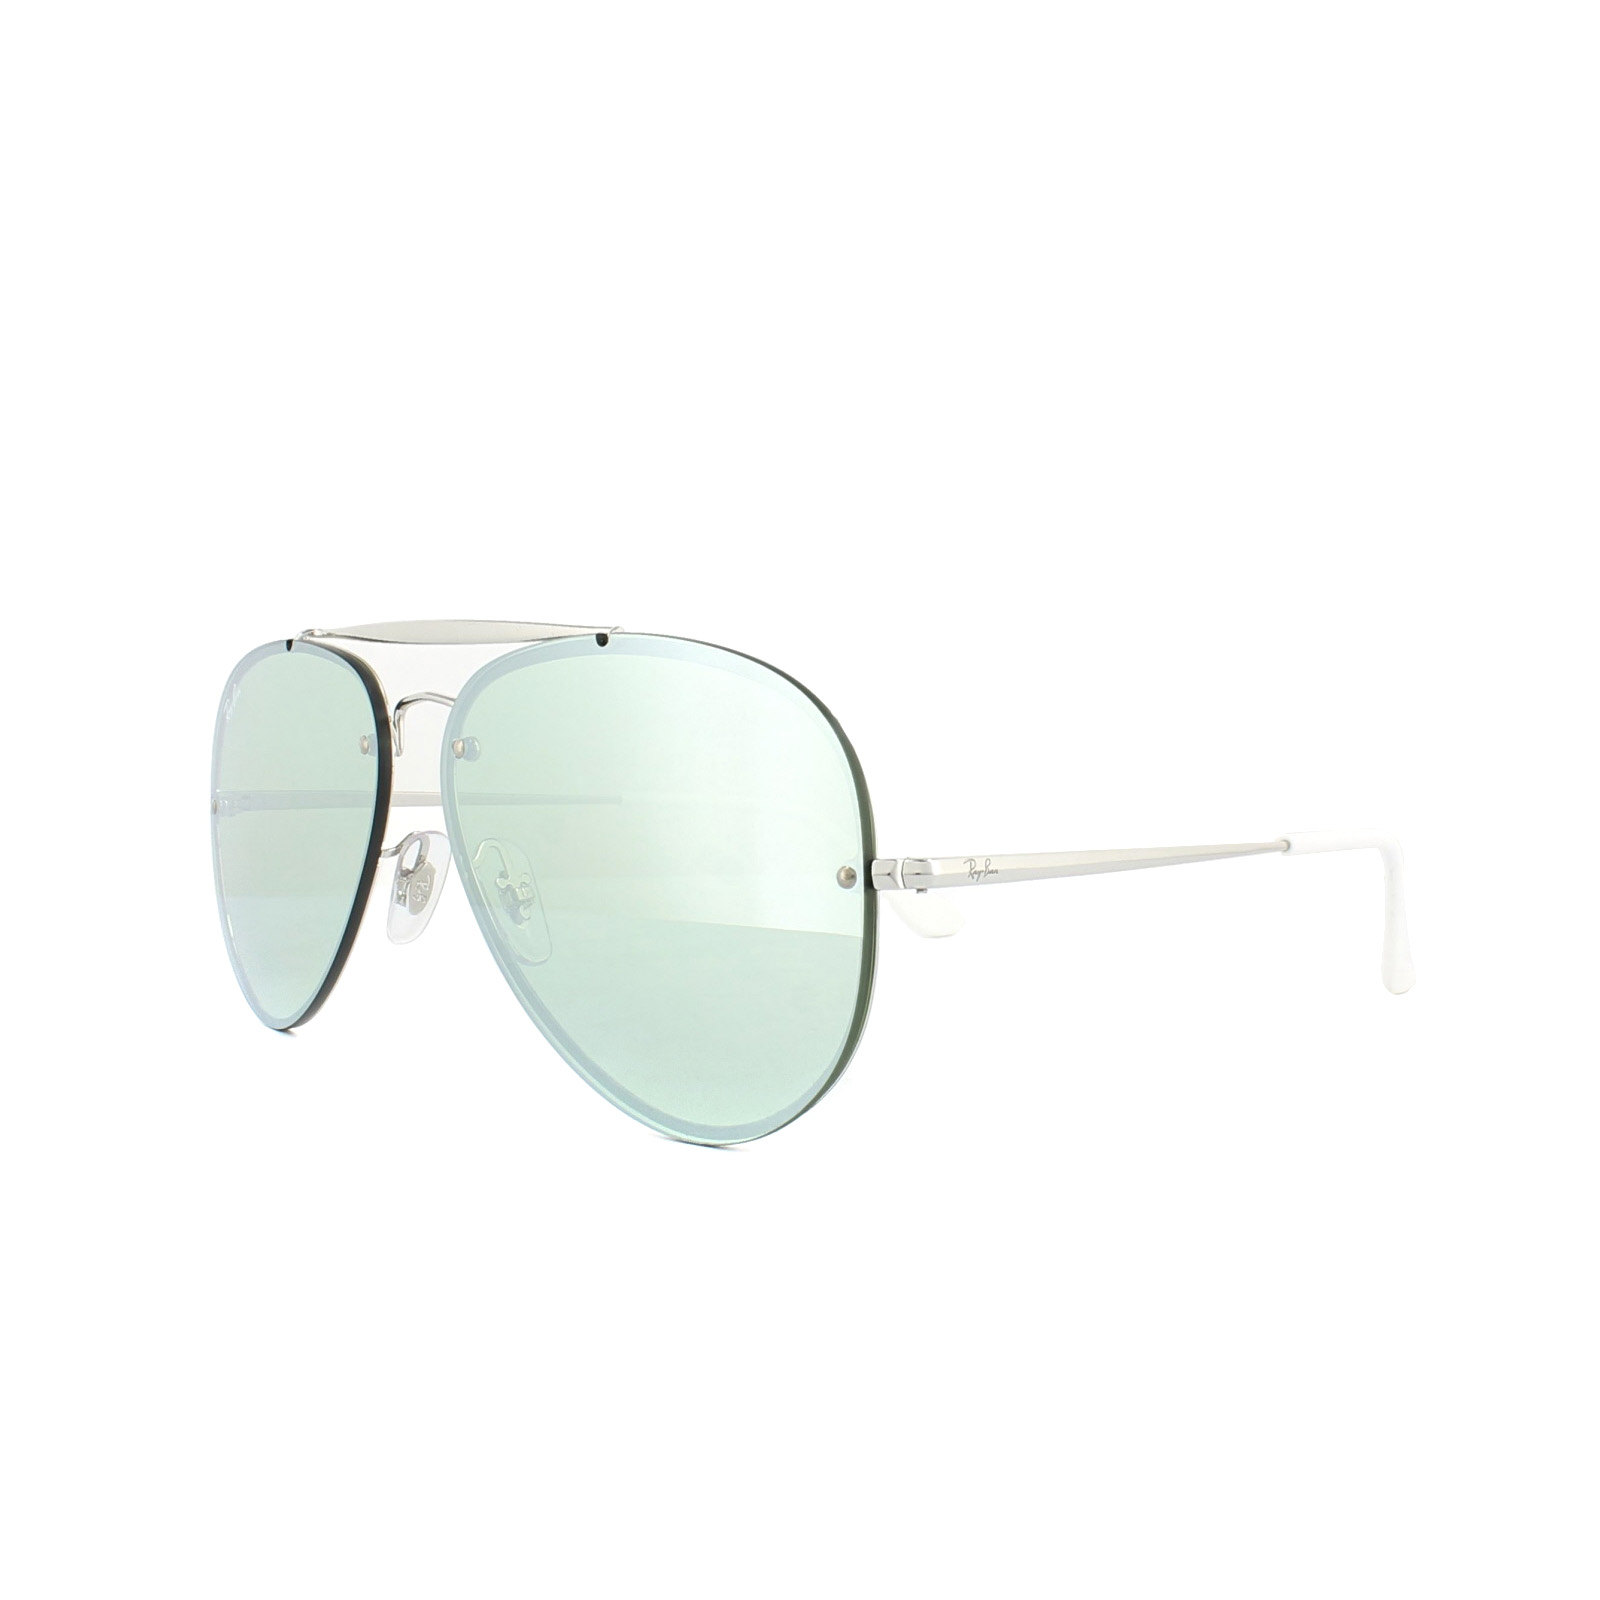 83b712827e Details about Ray-Ban Sunglasses Blaze Aviator 3584N 905130 Silver Dark Green  Silver Mirror